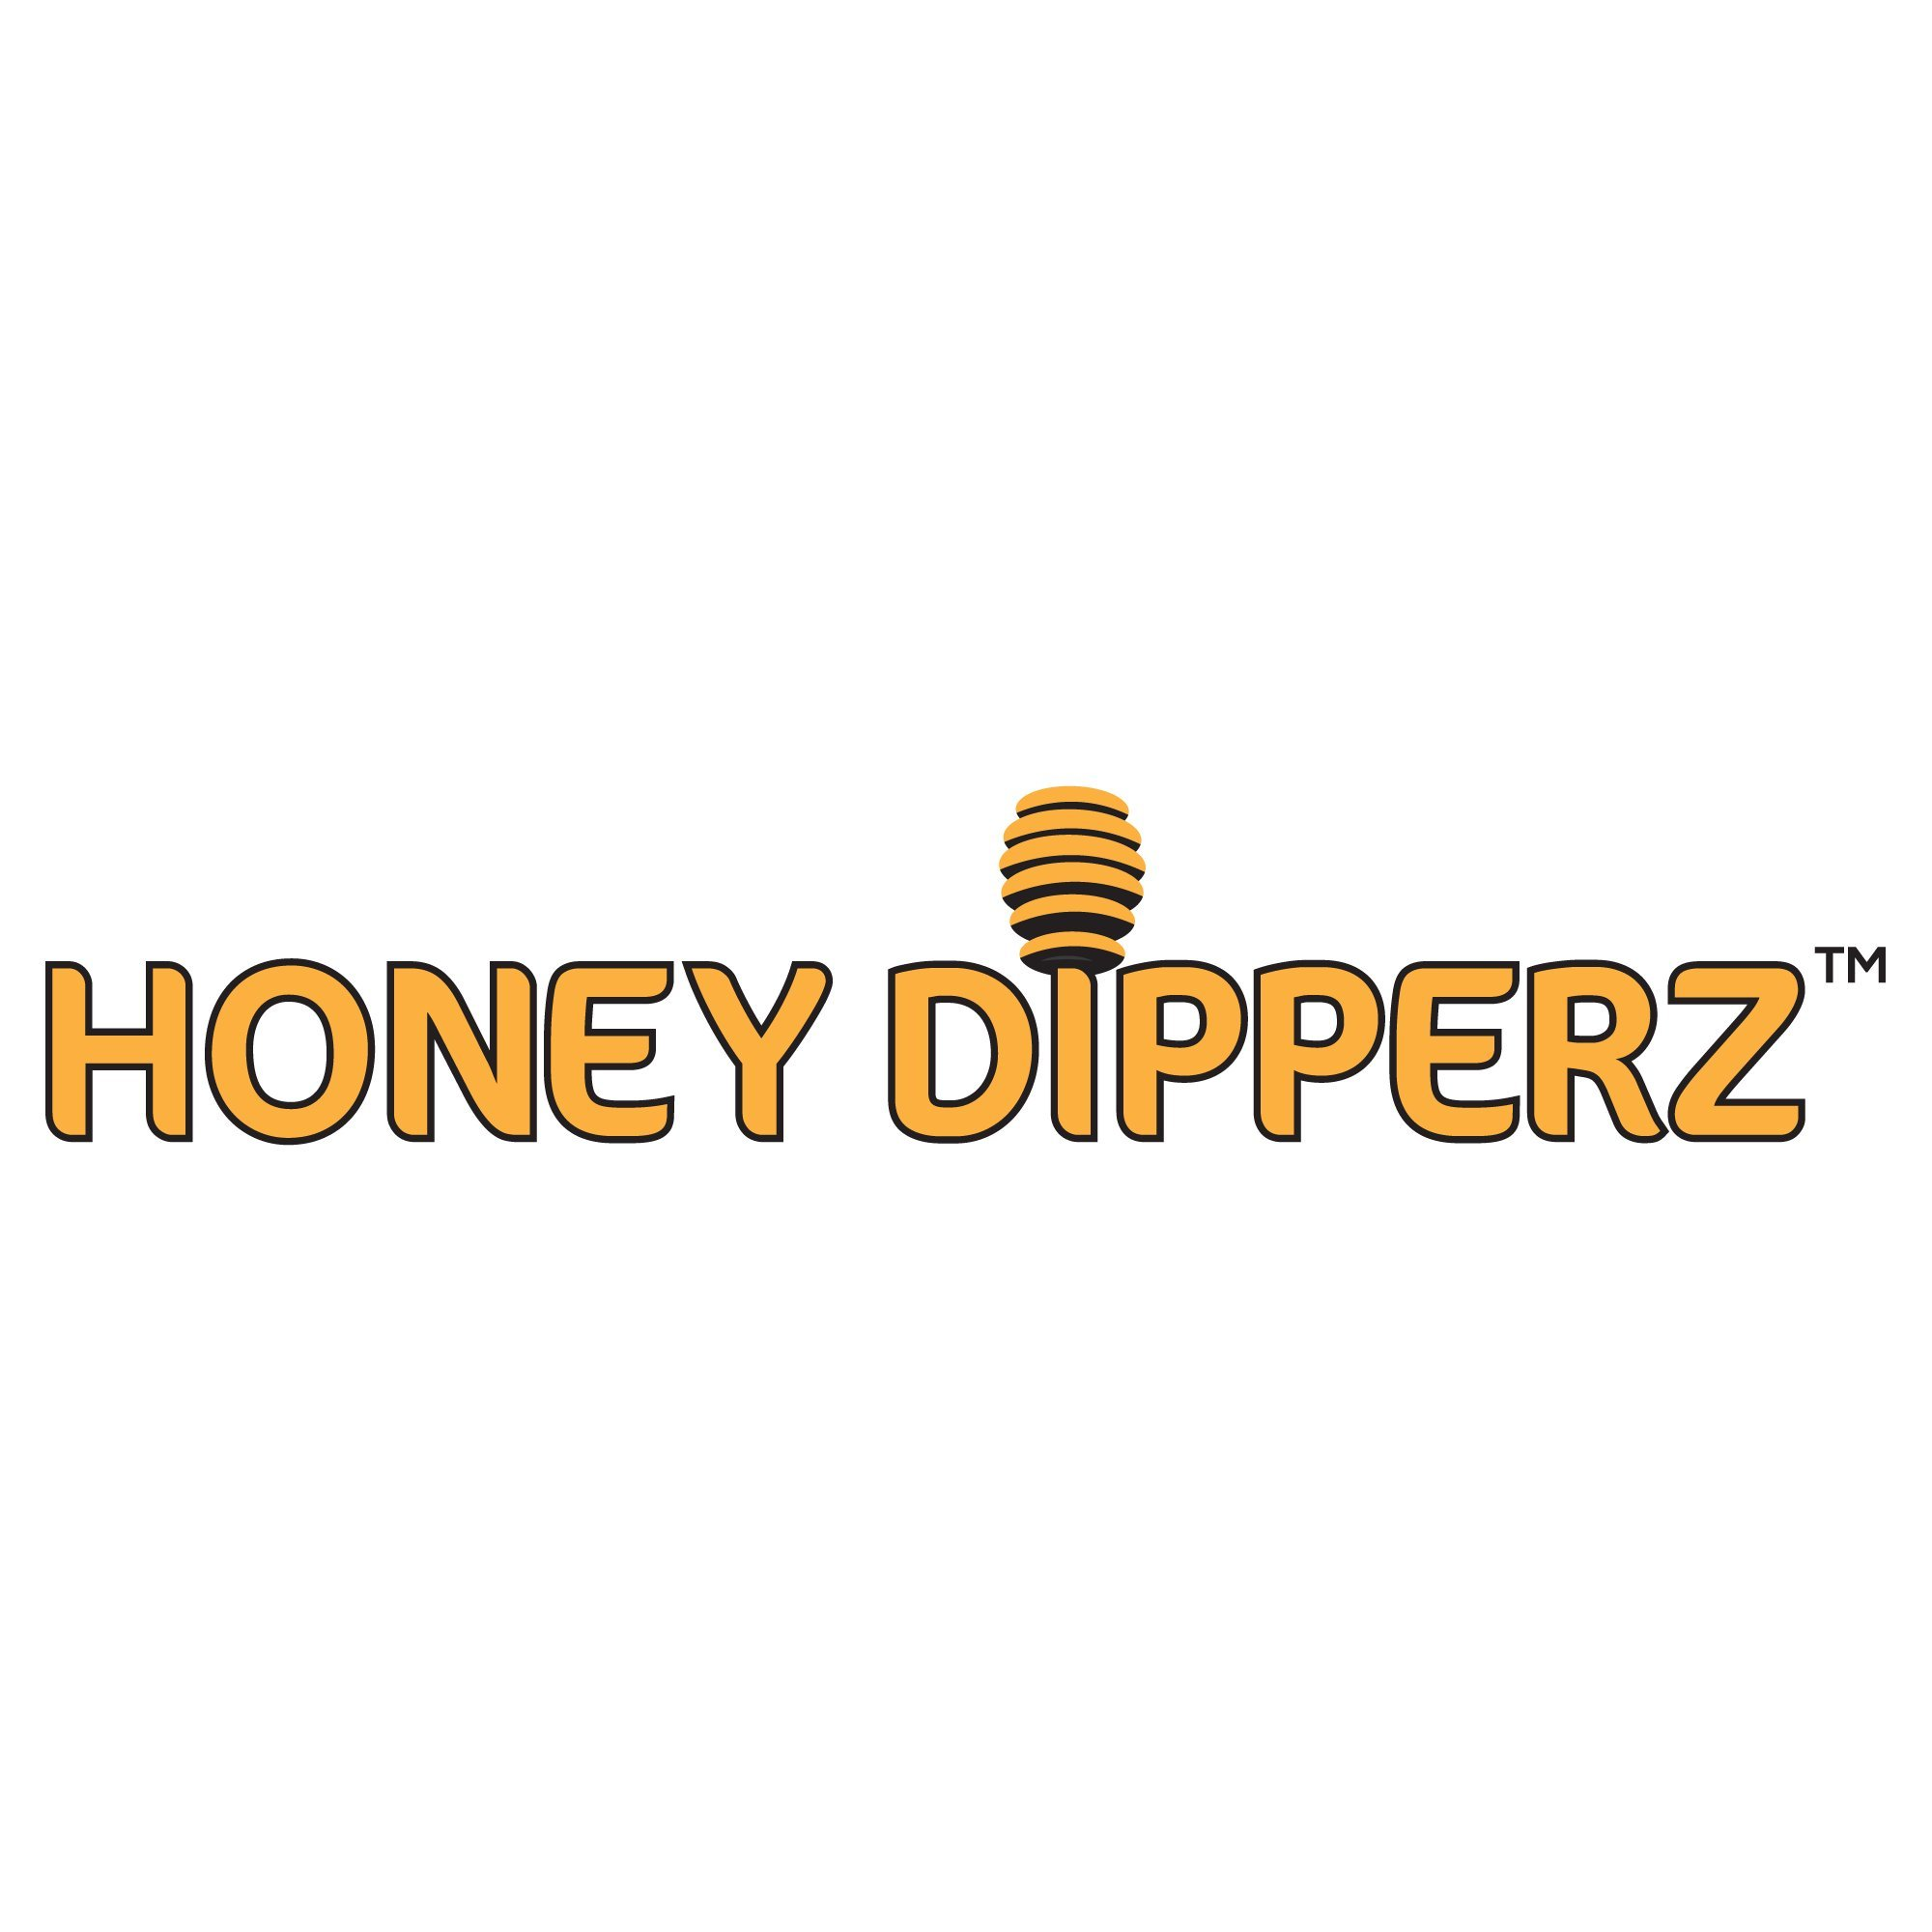 Honey Dipperz 24 PACK - 6'' Inches Long (16cm) Wooden Honey Dipper Drizzler Stirring Stick, Spoon Rod Muddler Dispense, Bulk Lot